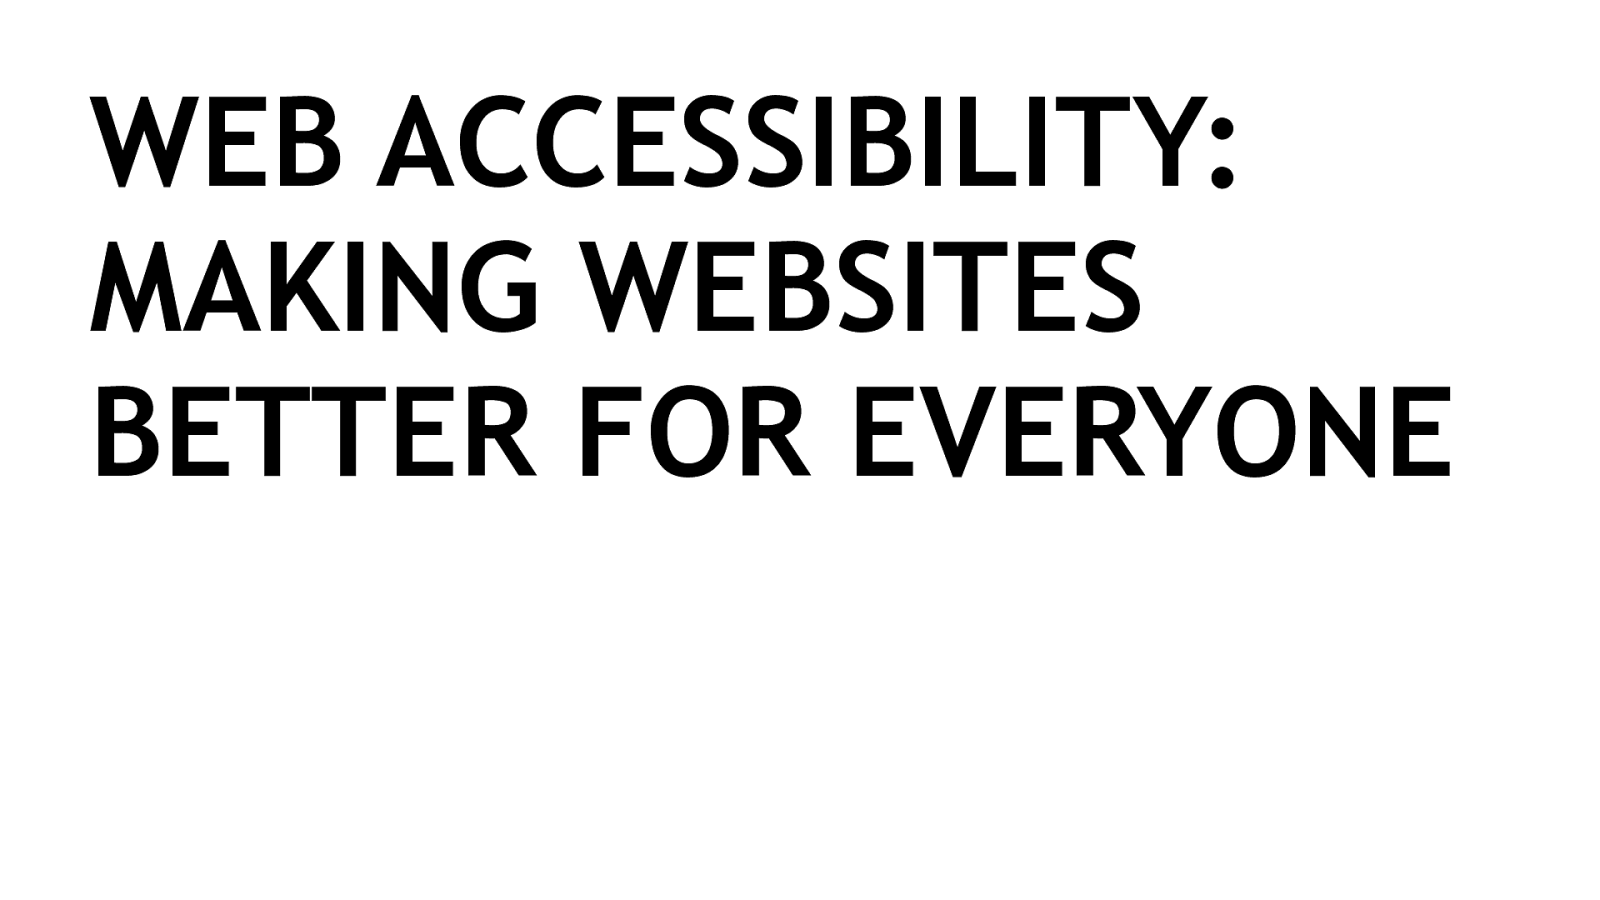 Keynote: Web Accessibility: Making Websites Better For Everyone